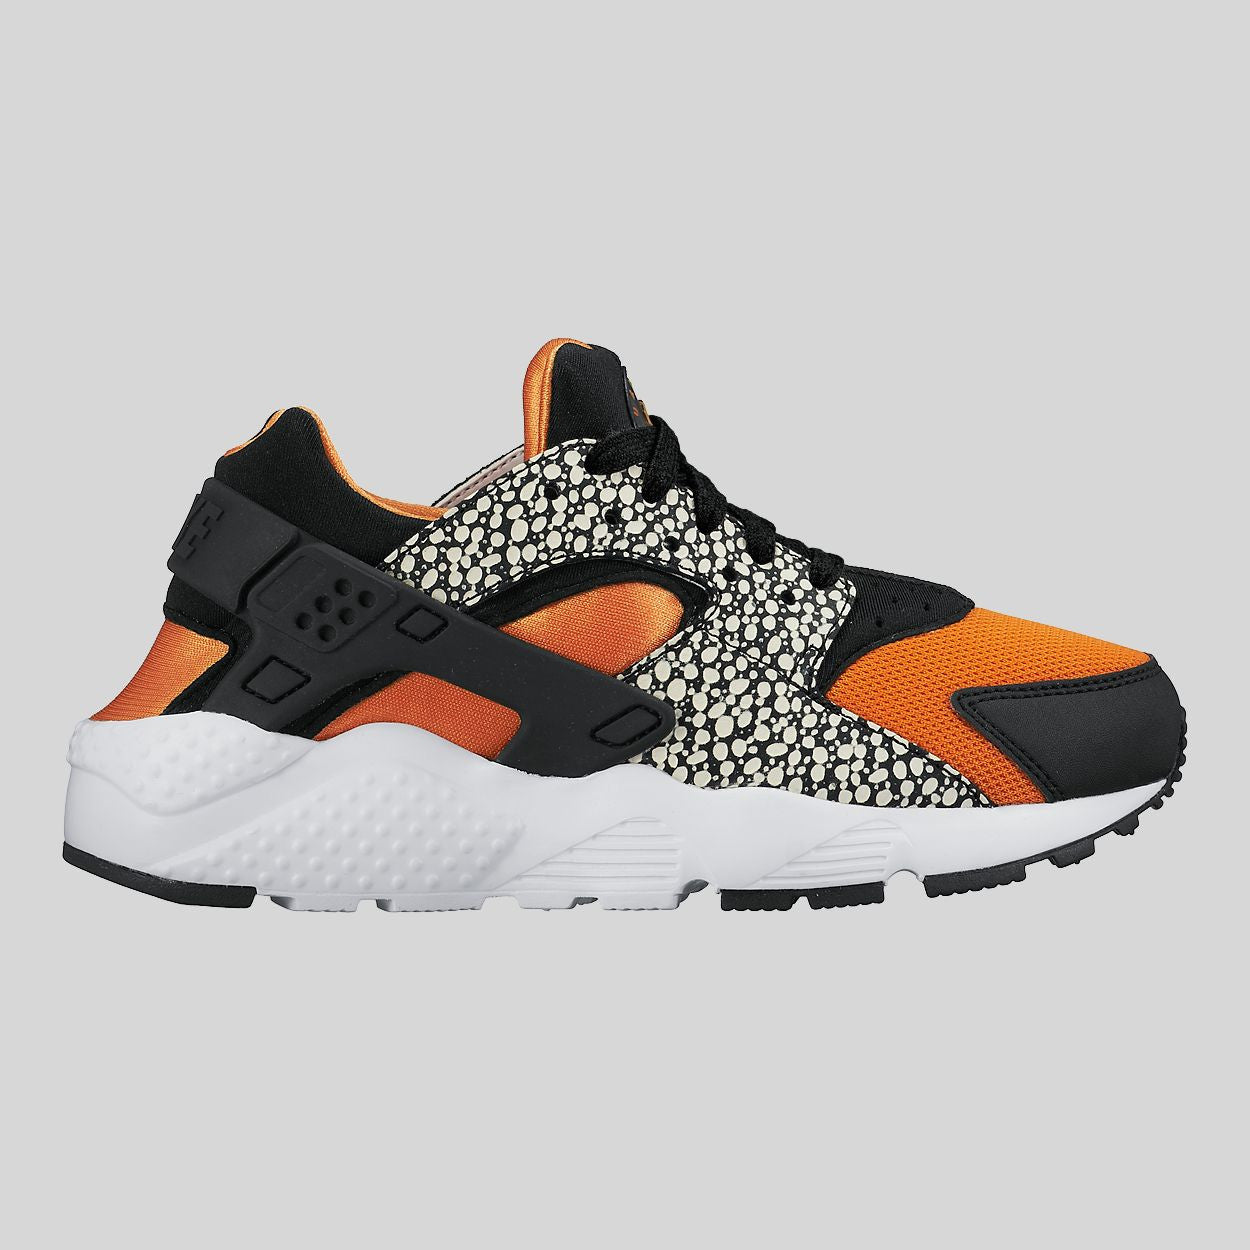 Nike Huarache Run Safari (GS) White Black Clay Orange (820341,100)